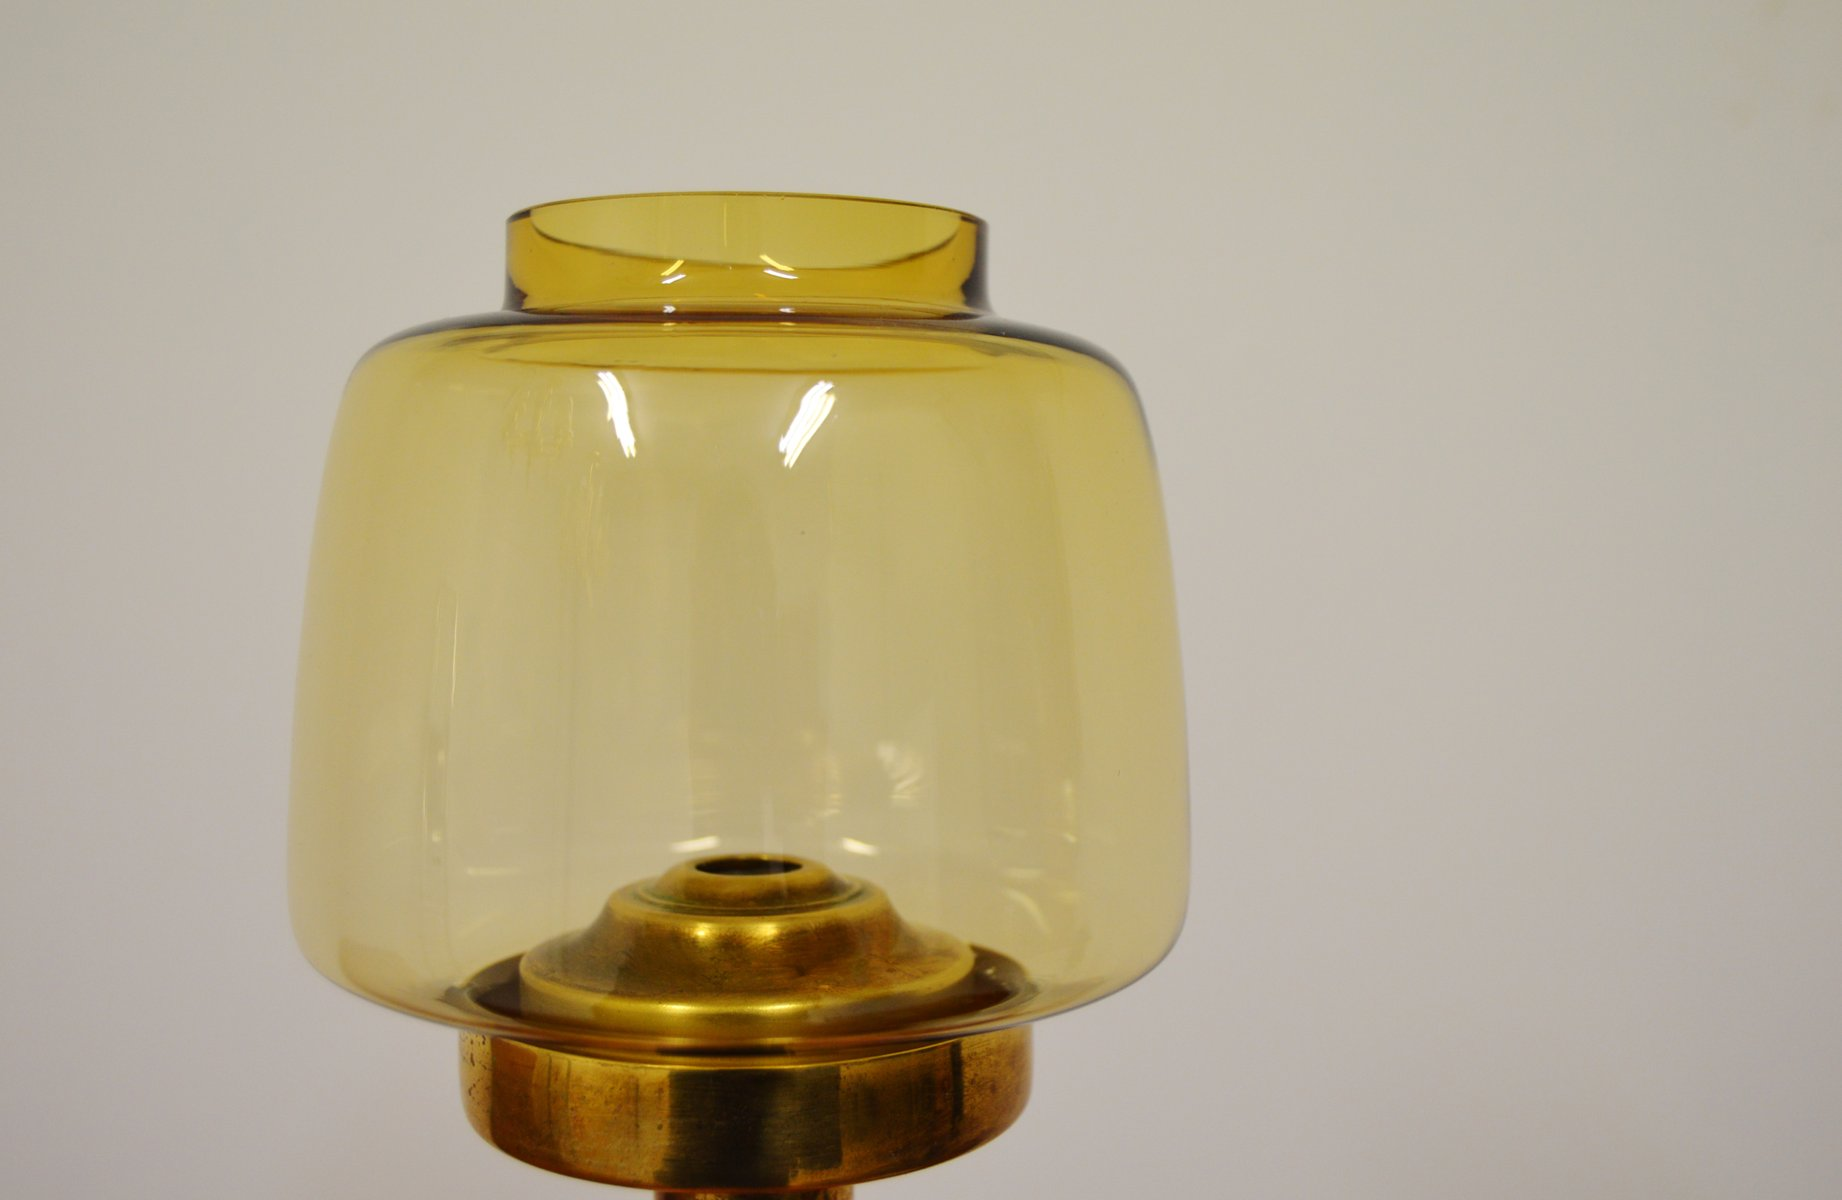 Vintage Wall-Mounted Brass & Glass Candle Holder by Hans-Agne ...